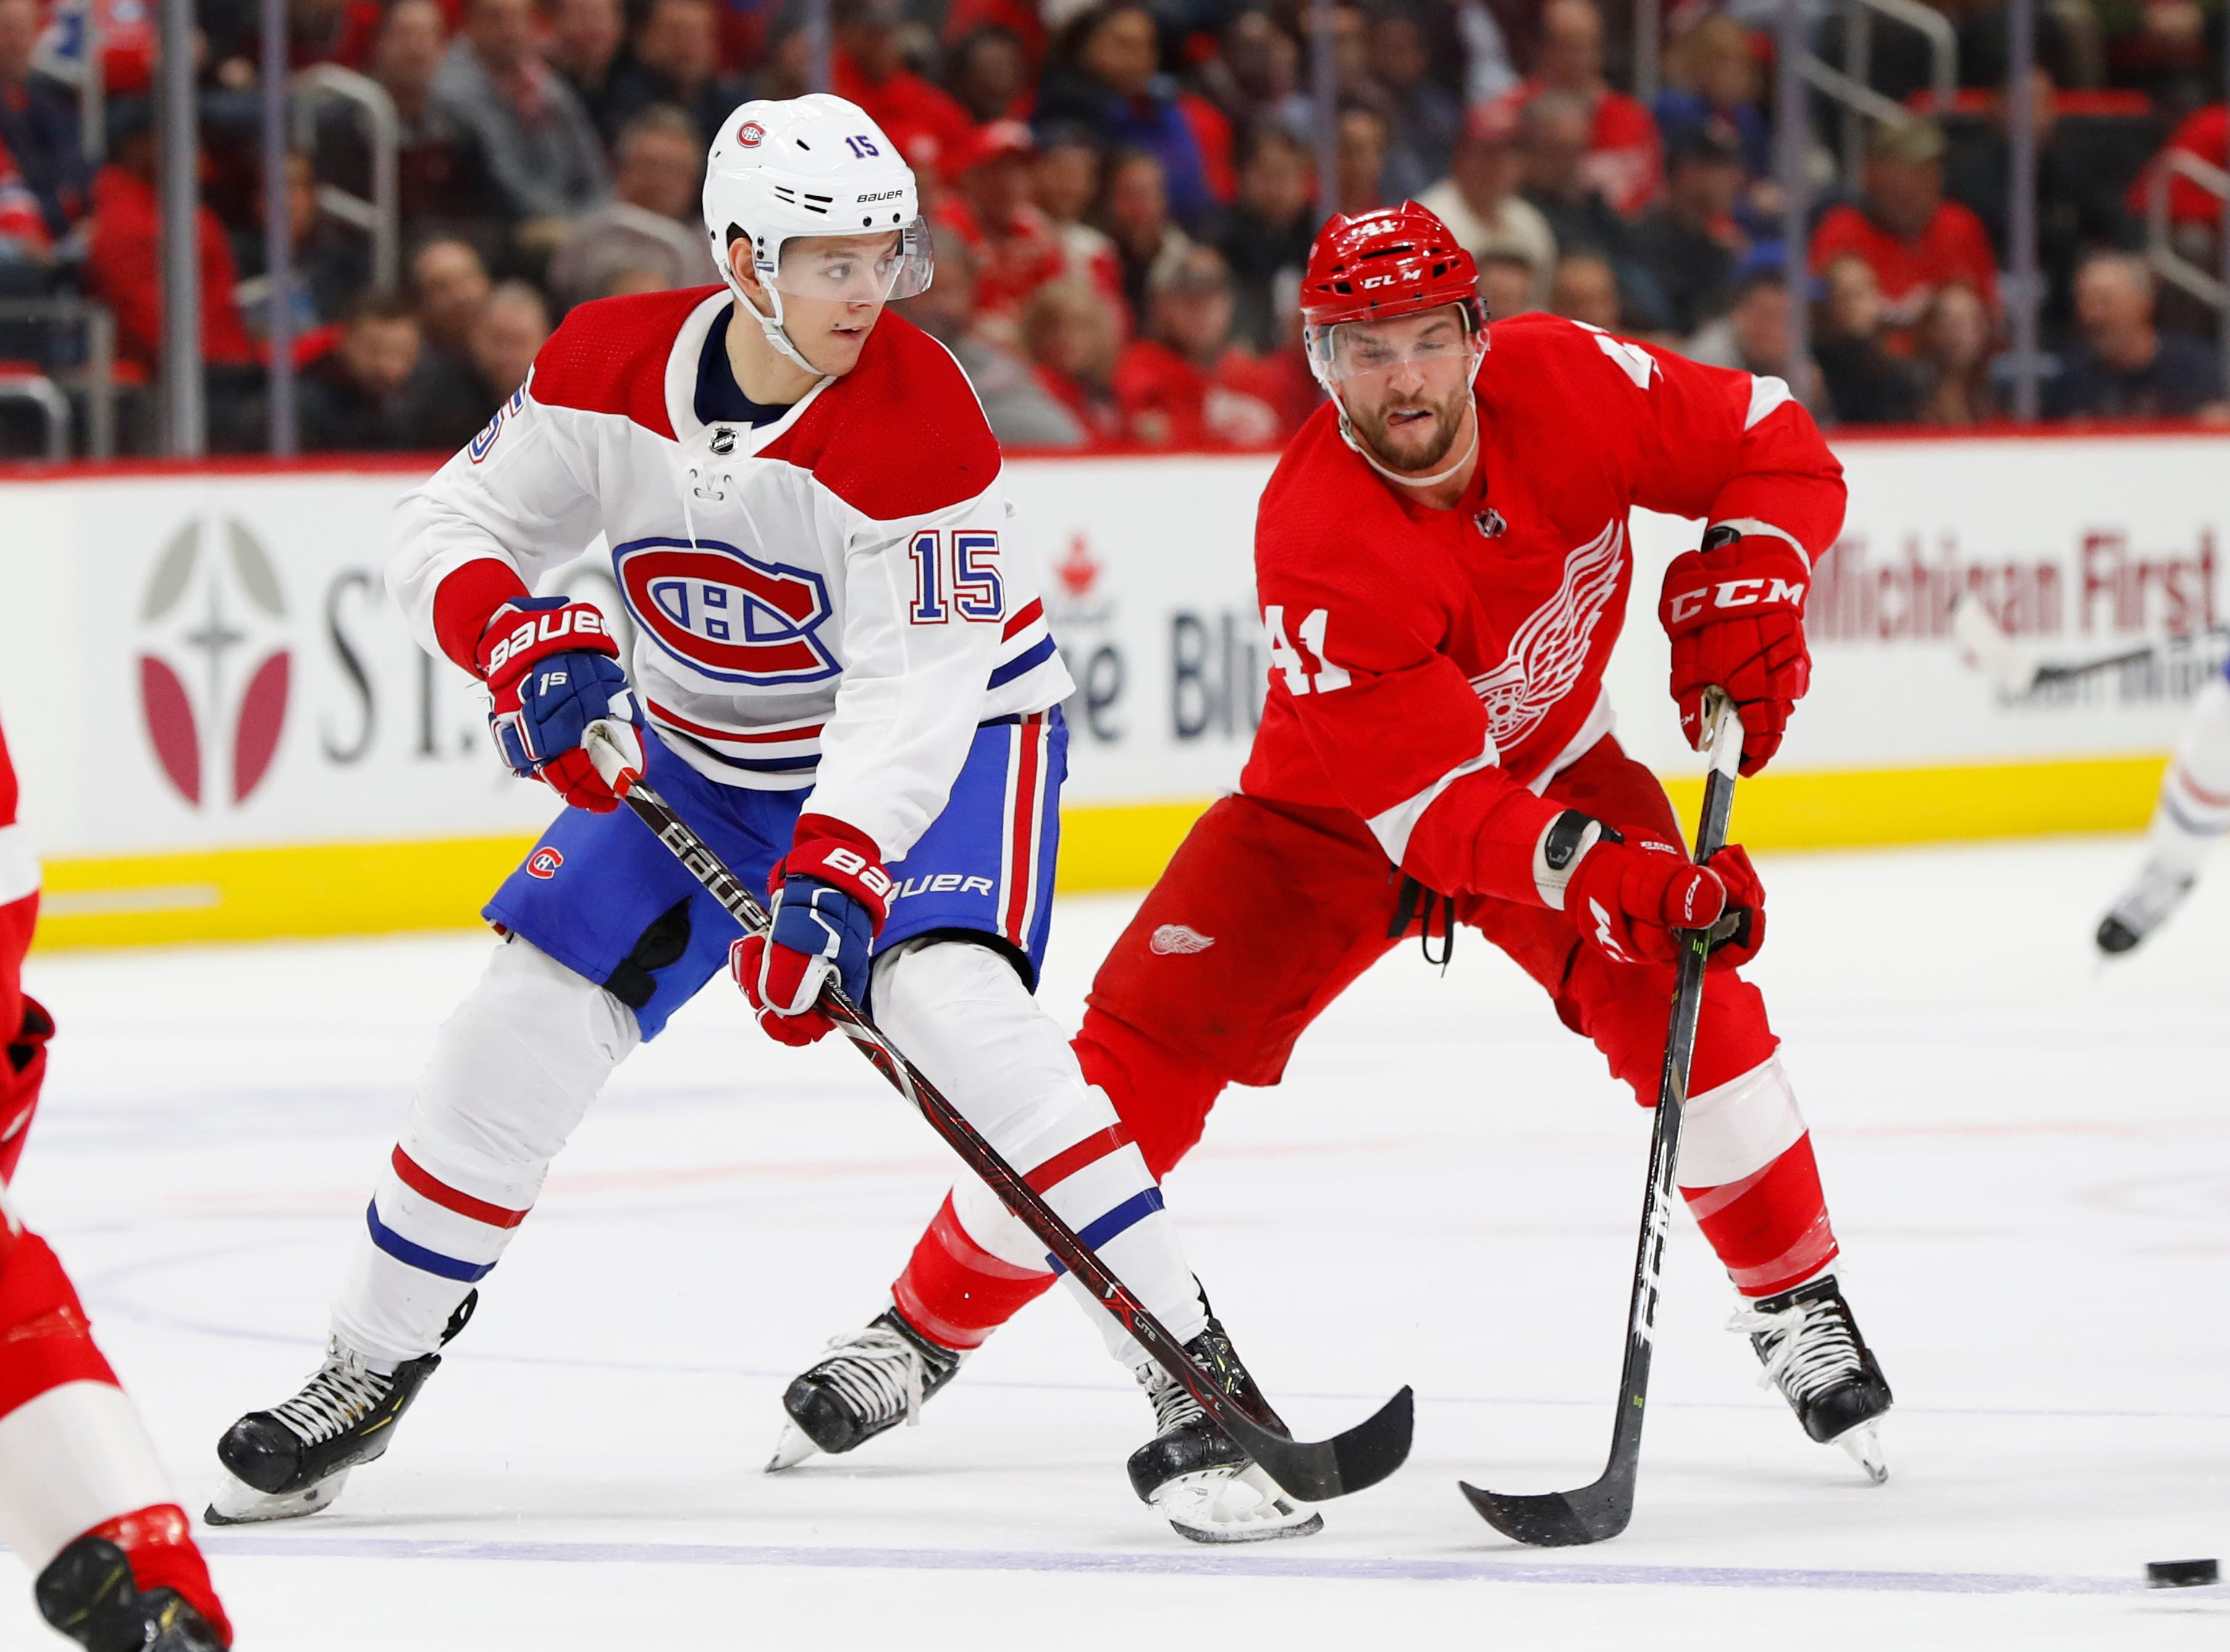 Montreal Canadiens center Jesperi Kotkaniemi (15) passes as Detroit Red Wings center Luke Glendening (41) defends in the first period.